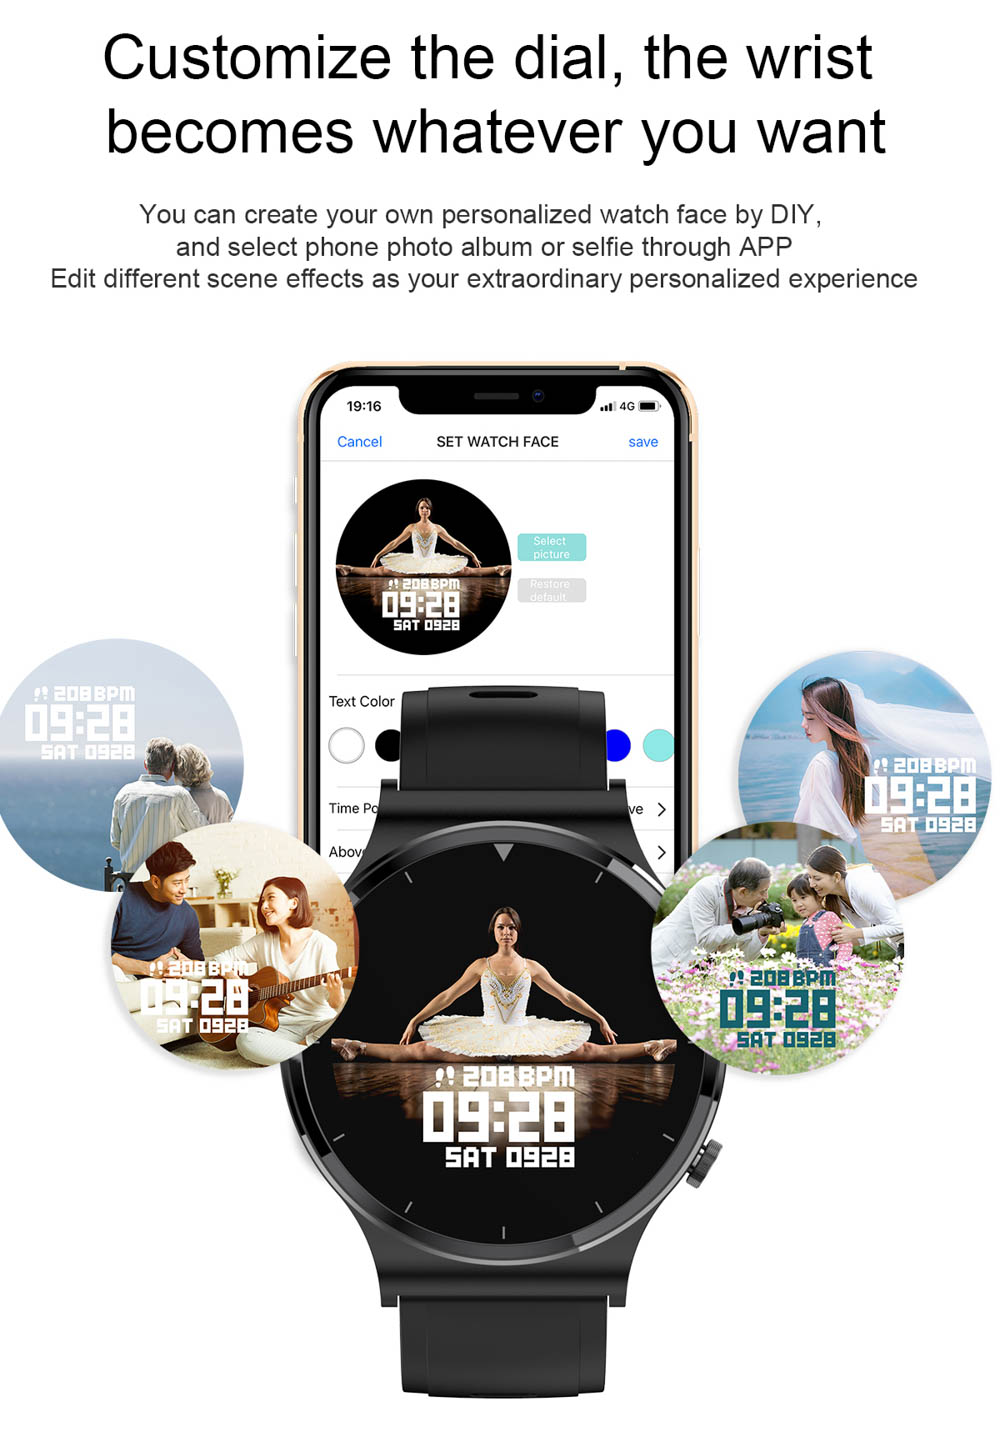 Had714a24e0e24d72a276132a6f5bfc984 NUOBO 2021 New Smart Watch Men Bluetooth Call Heart Rate Blood Pressure Sports IP68 Waterproof Smartwatch for Android IOS Phone